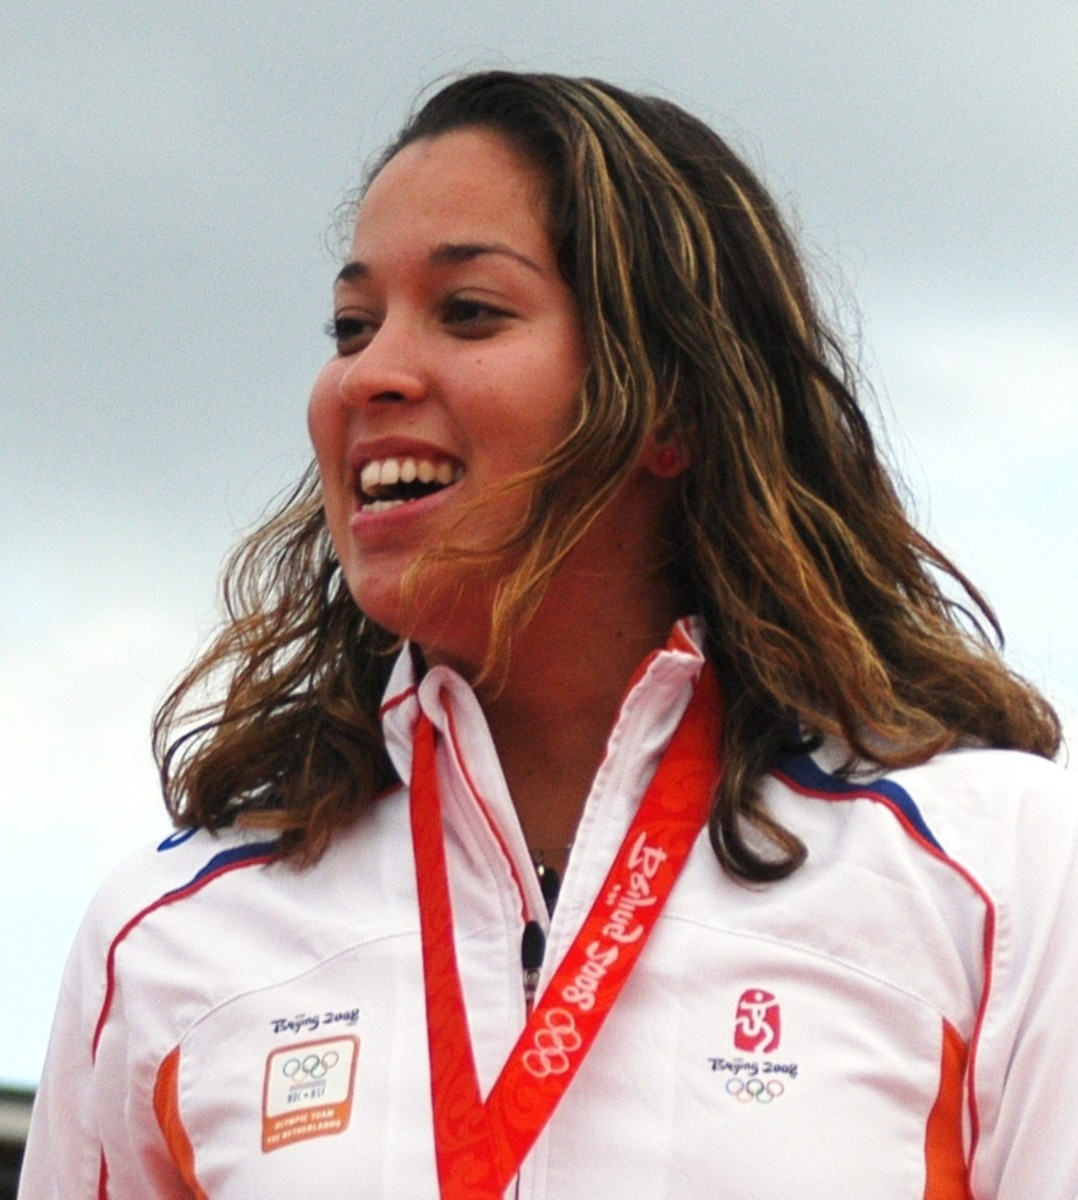 Ranomi Kromowidjojo, The Freestyle Swimmer That Had One of the Best Years of her Life